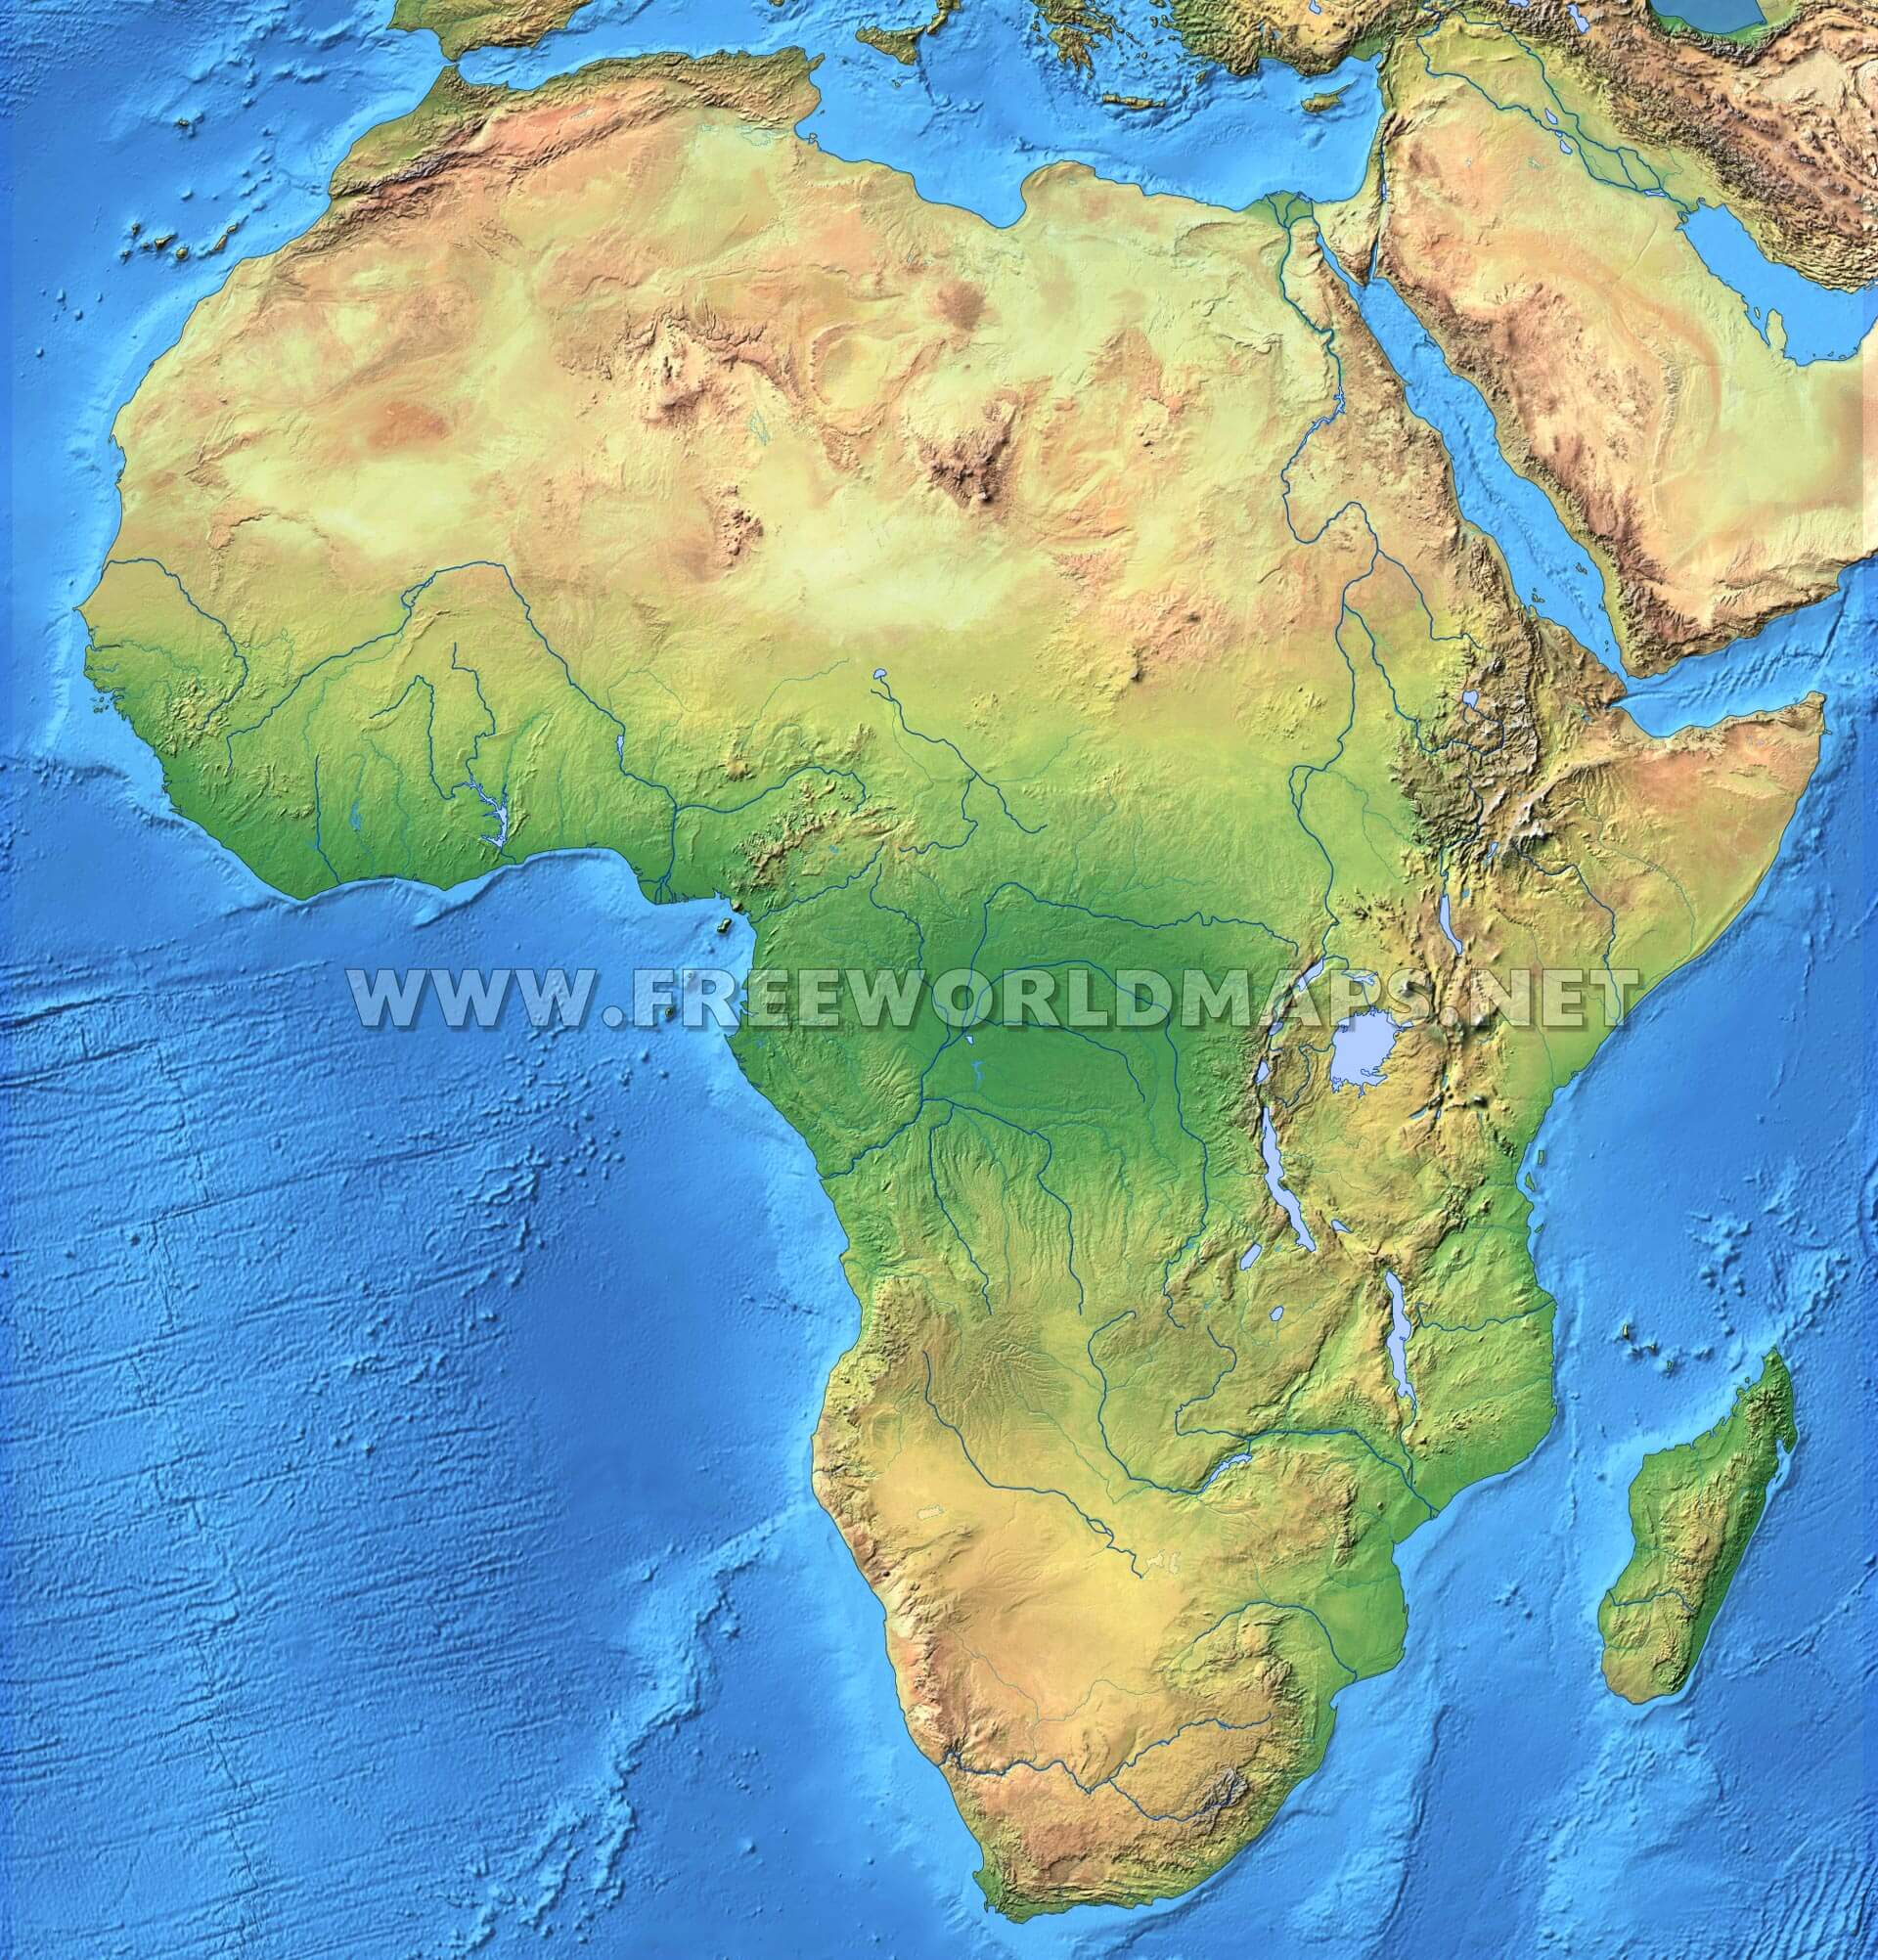 Africa Map Geography.Africa Physical Map Freeworldmaps Net